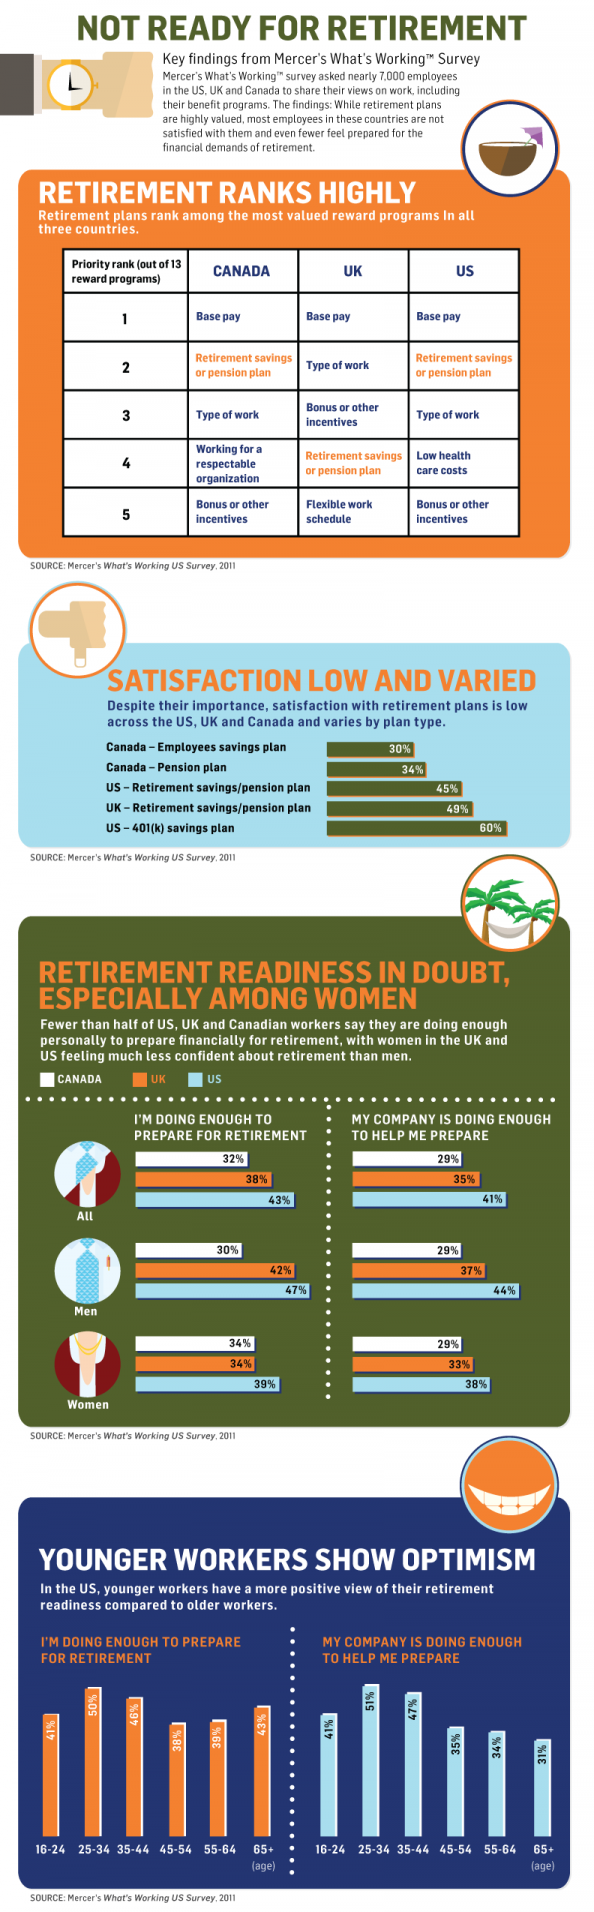 Not Ready for Retirement Infographic